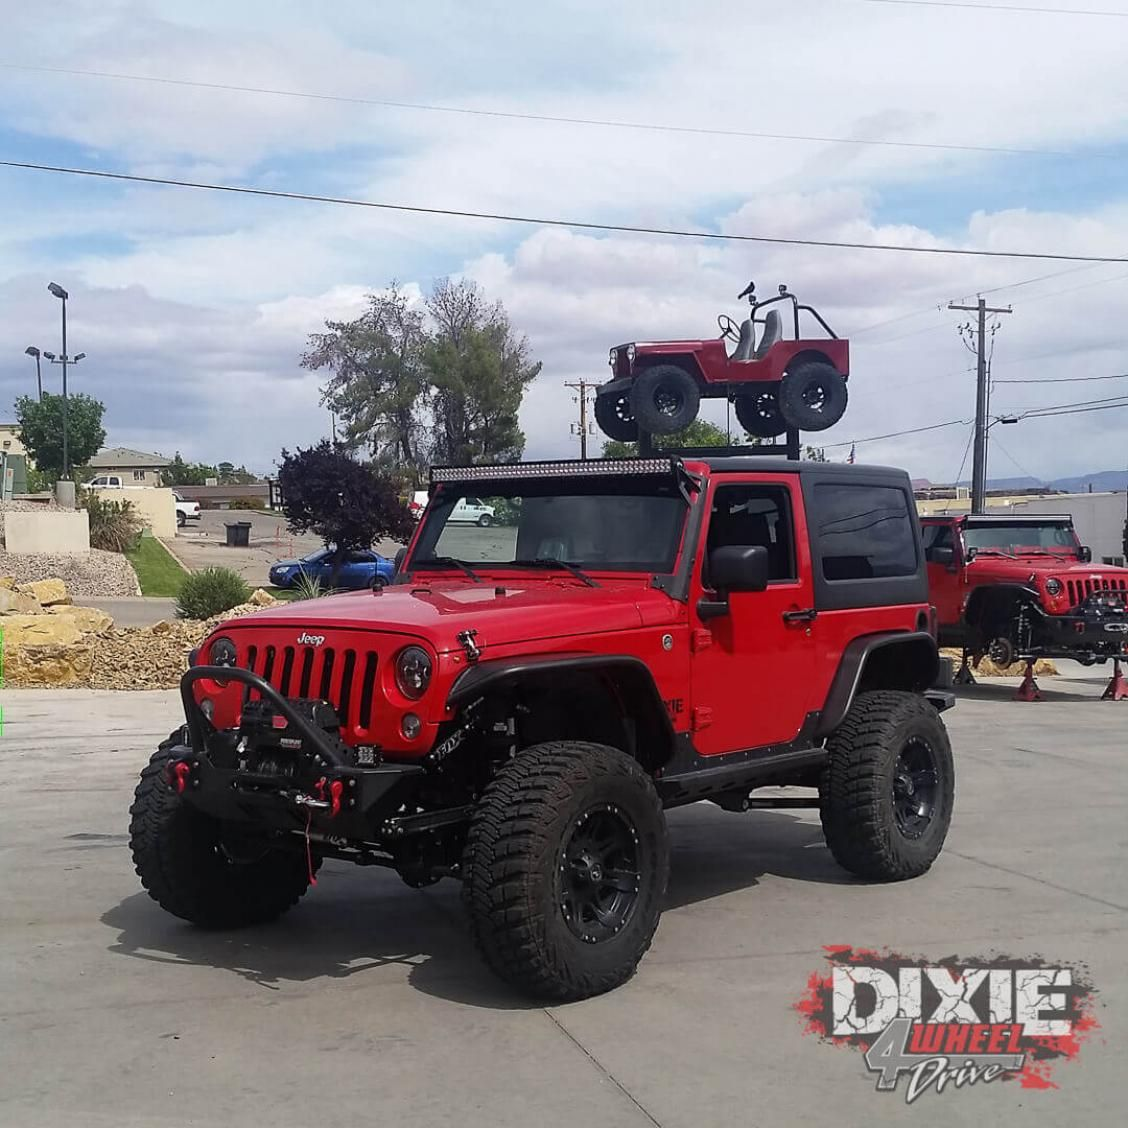 2007 Jeep Jk Sport Prerunner Dixie 4 Wheel Drive Jeep Jk Jeep Wrangler Lifted Red Jeep Wrangler